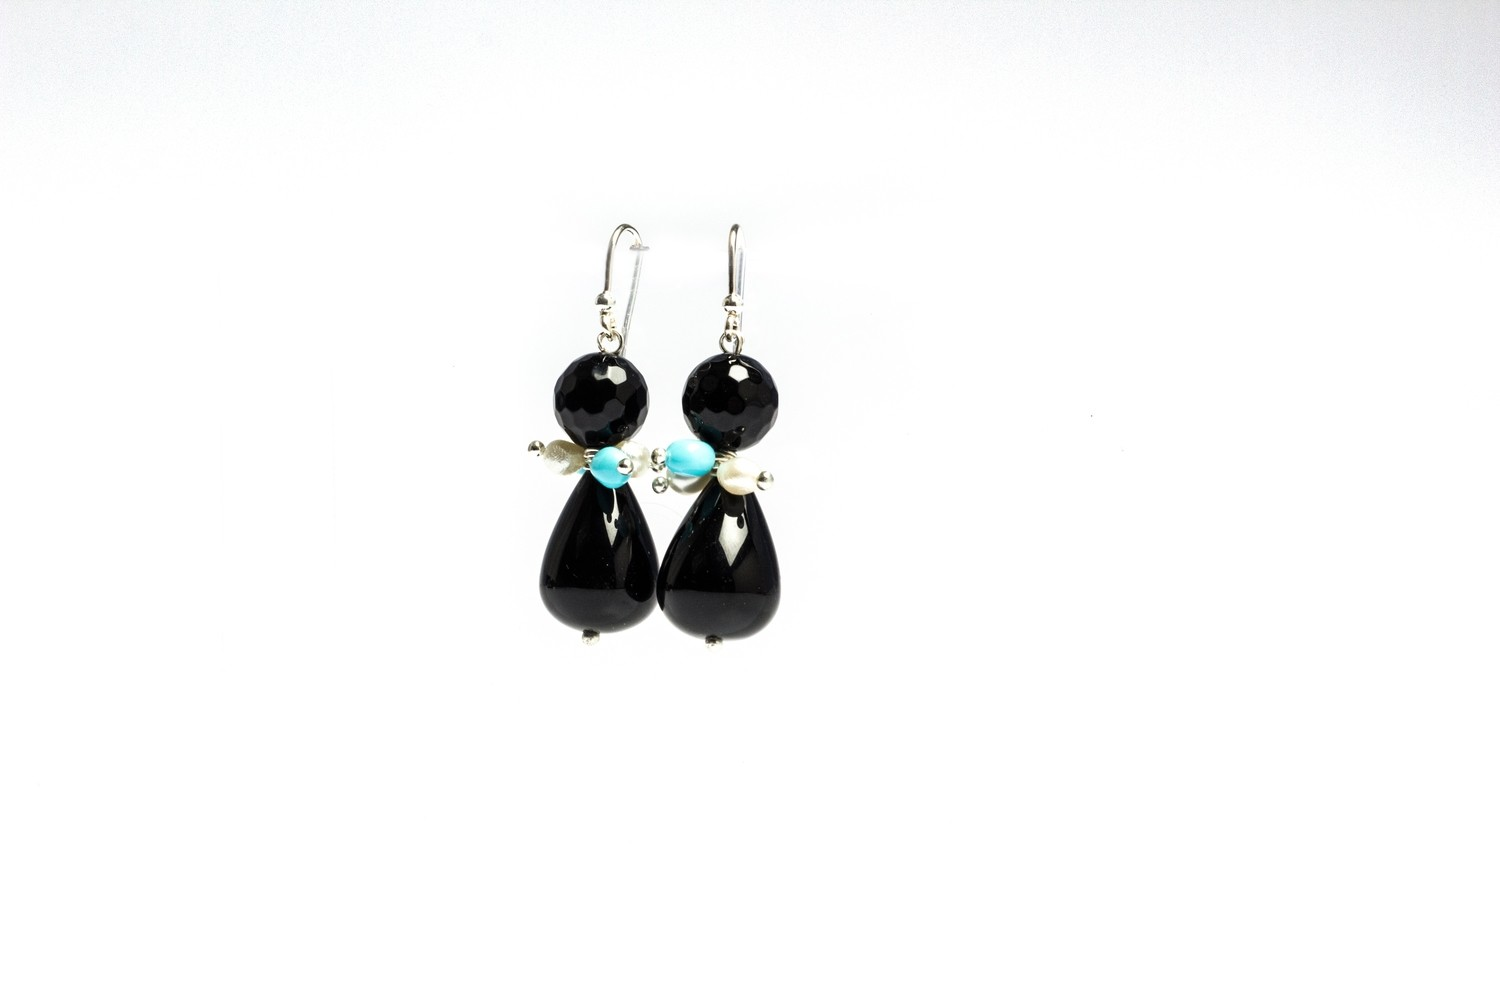 Orecchini in argento 925 con pendente in agata nera e dettagli di perline di fiume e pasta di turchese - 925 Silver earrings with black agate pendant and river bead and turquoise paste details